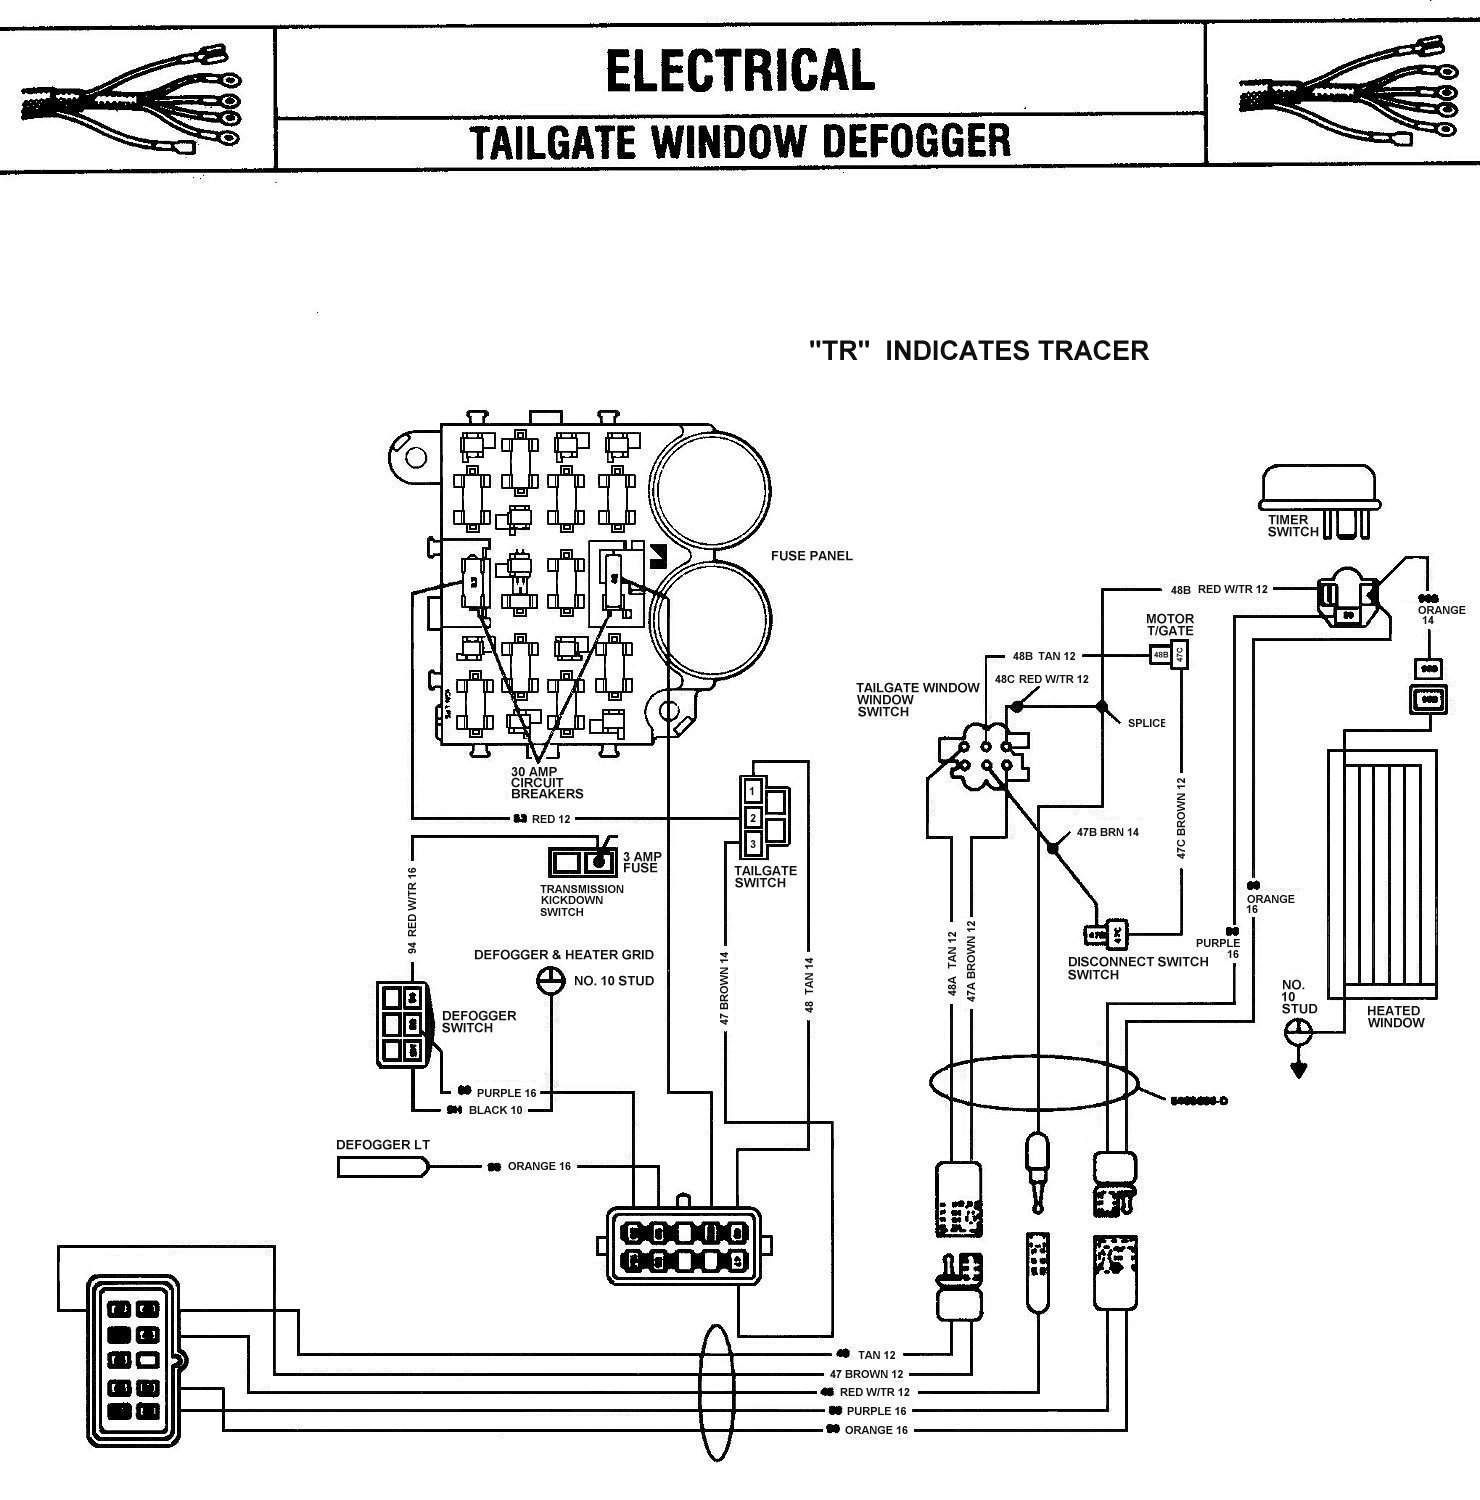 1990 jeep grand wagoneer wiring harness wiring diagram list jeep grand wagoneer wiring harness wiring diagram used 1990 jeep grand wagoneer wiring harness